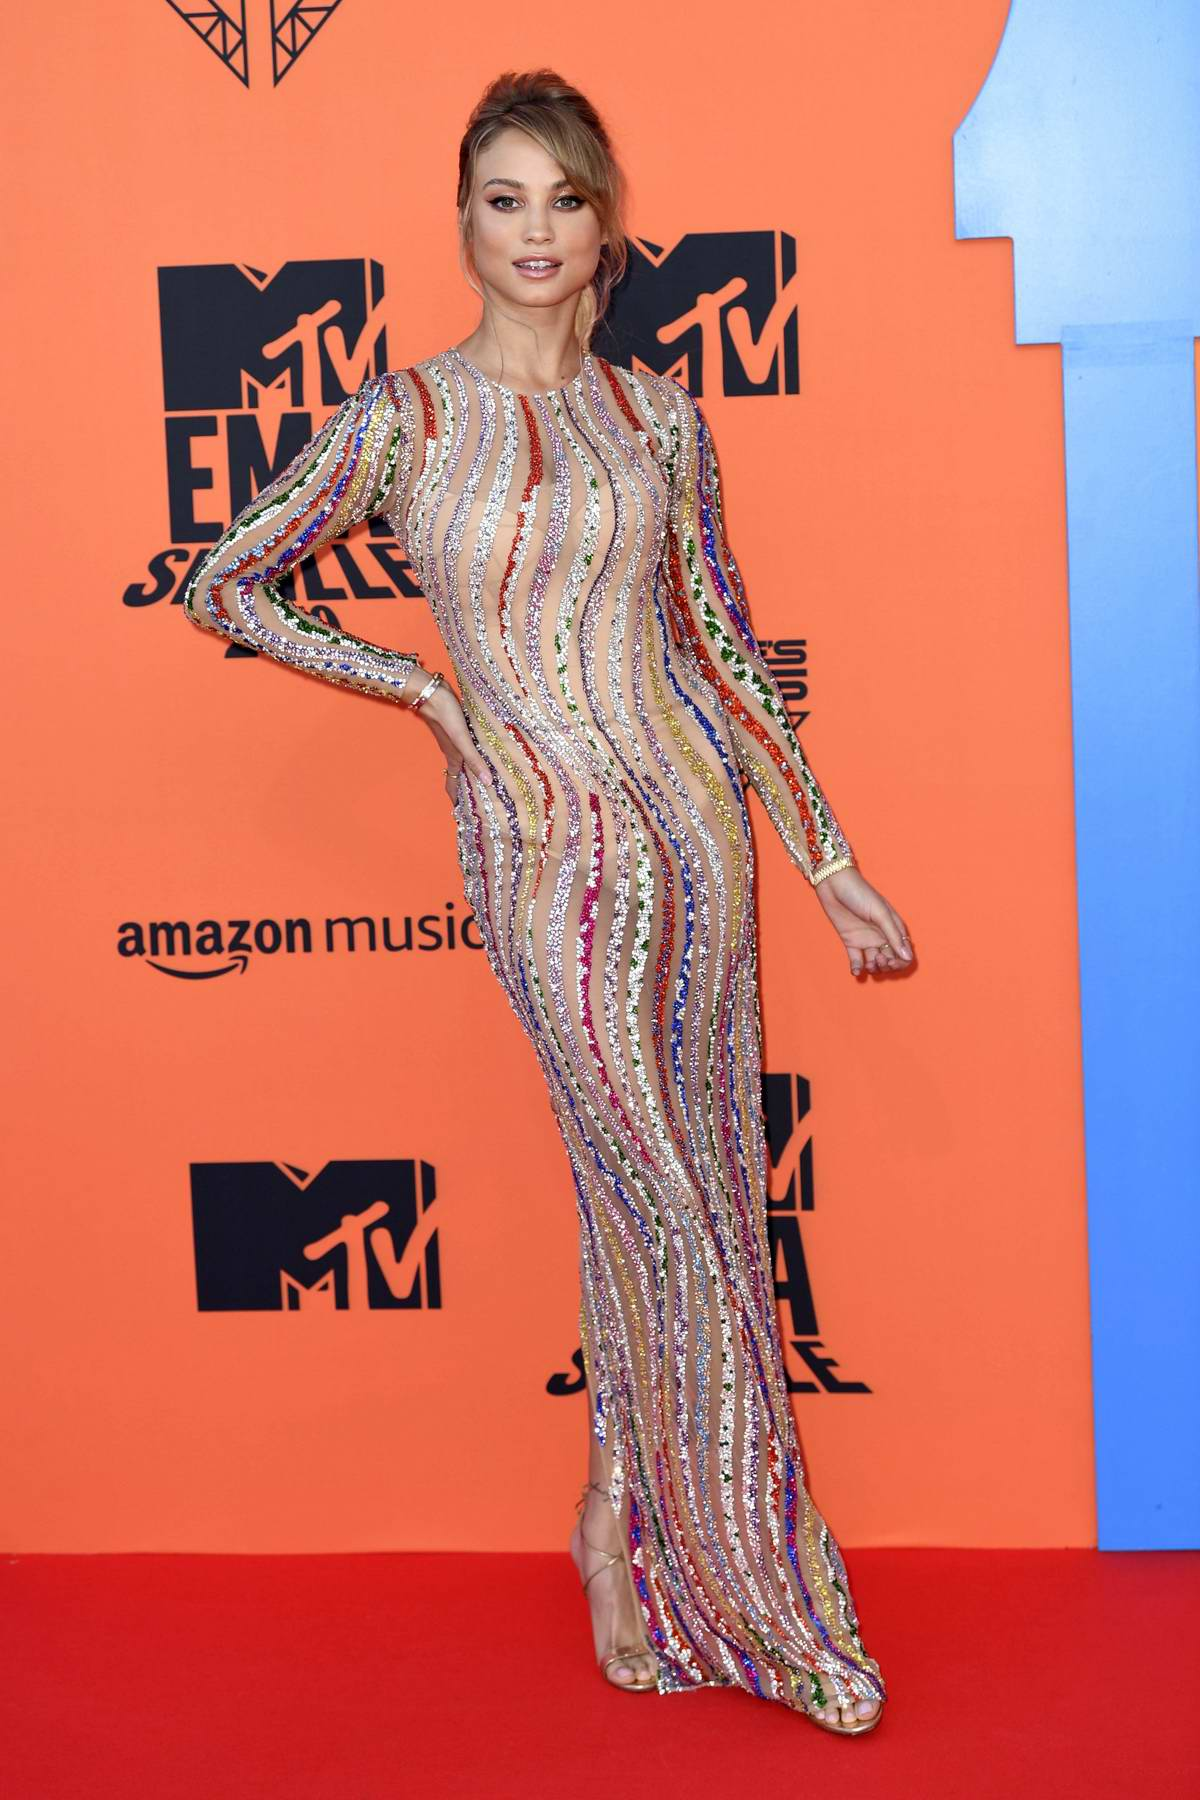 Rose Bertram attends the MTV European Music Awards 2019 at FIBES Conference and Exhibition Centre in Seville, Spain